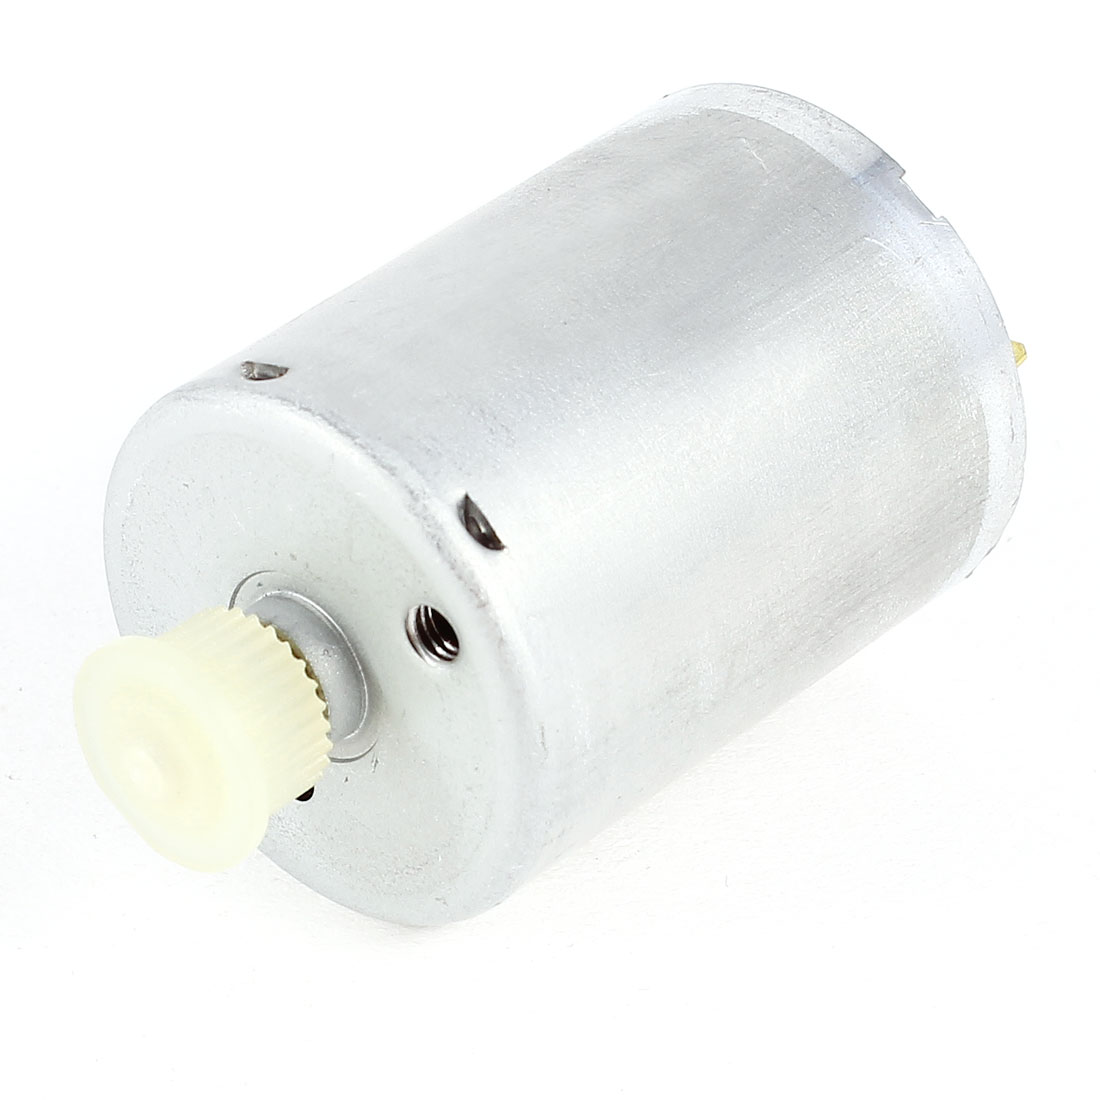 DC 6V 10000RPM High Speed Dual 2mm Diameter Axle Cylinder Mini Electric DC Motor